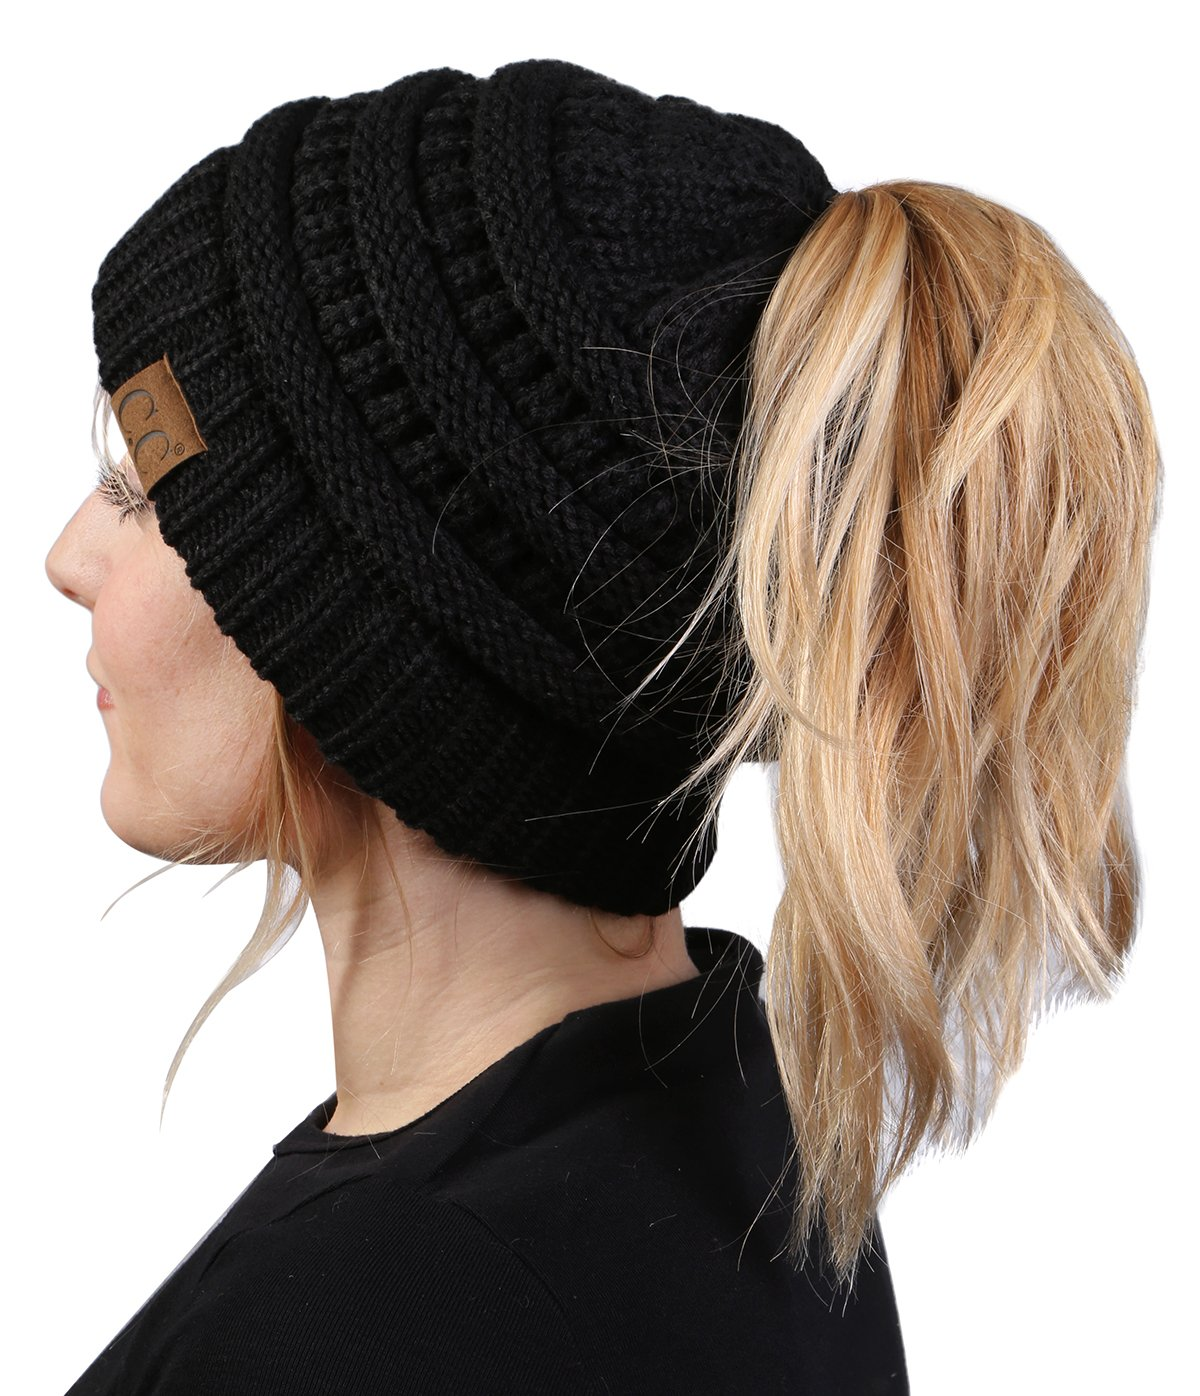 BT-6020a-06 Messy Bun Womens Winter Knit Hat Beanie Tail - Black by Funky Junque